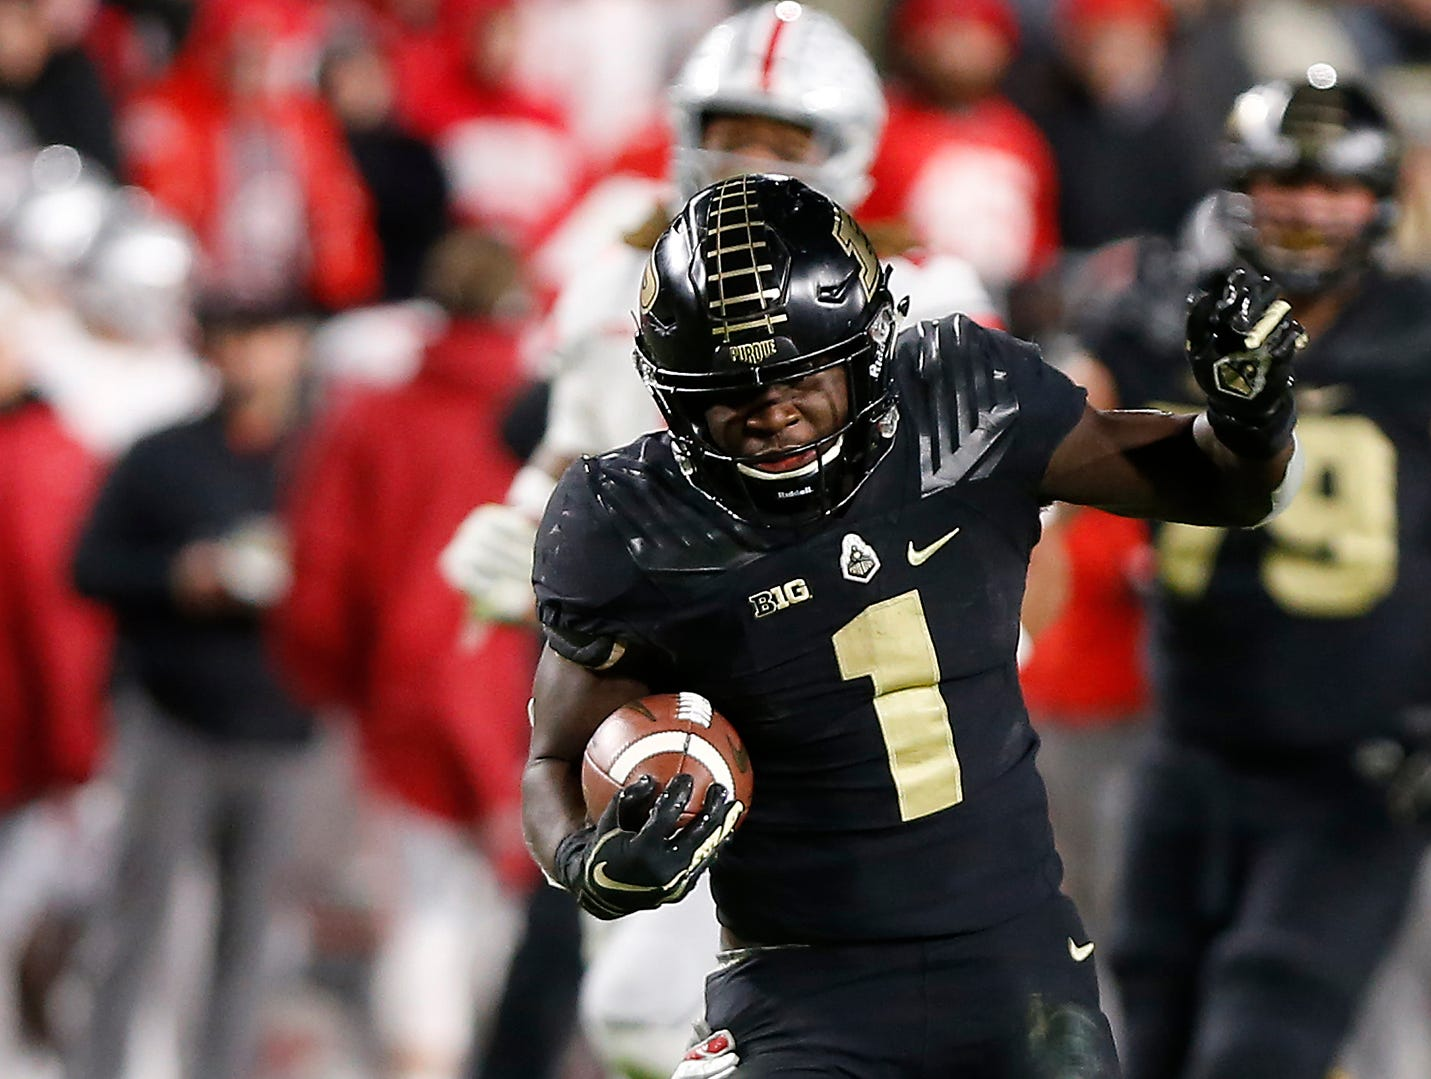 D. J. Knox of Purdue slips through the hands of Jordan Fuller of Ohio State as he rushes for a touchdown at 11:39  in the fourth quarter Saturday, October 20, 2018, at Ross-Ade Stadium. Purdue upset the No. 2 ranked Buckeyes 49-20.